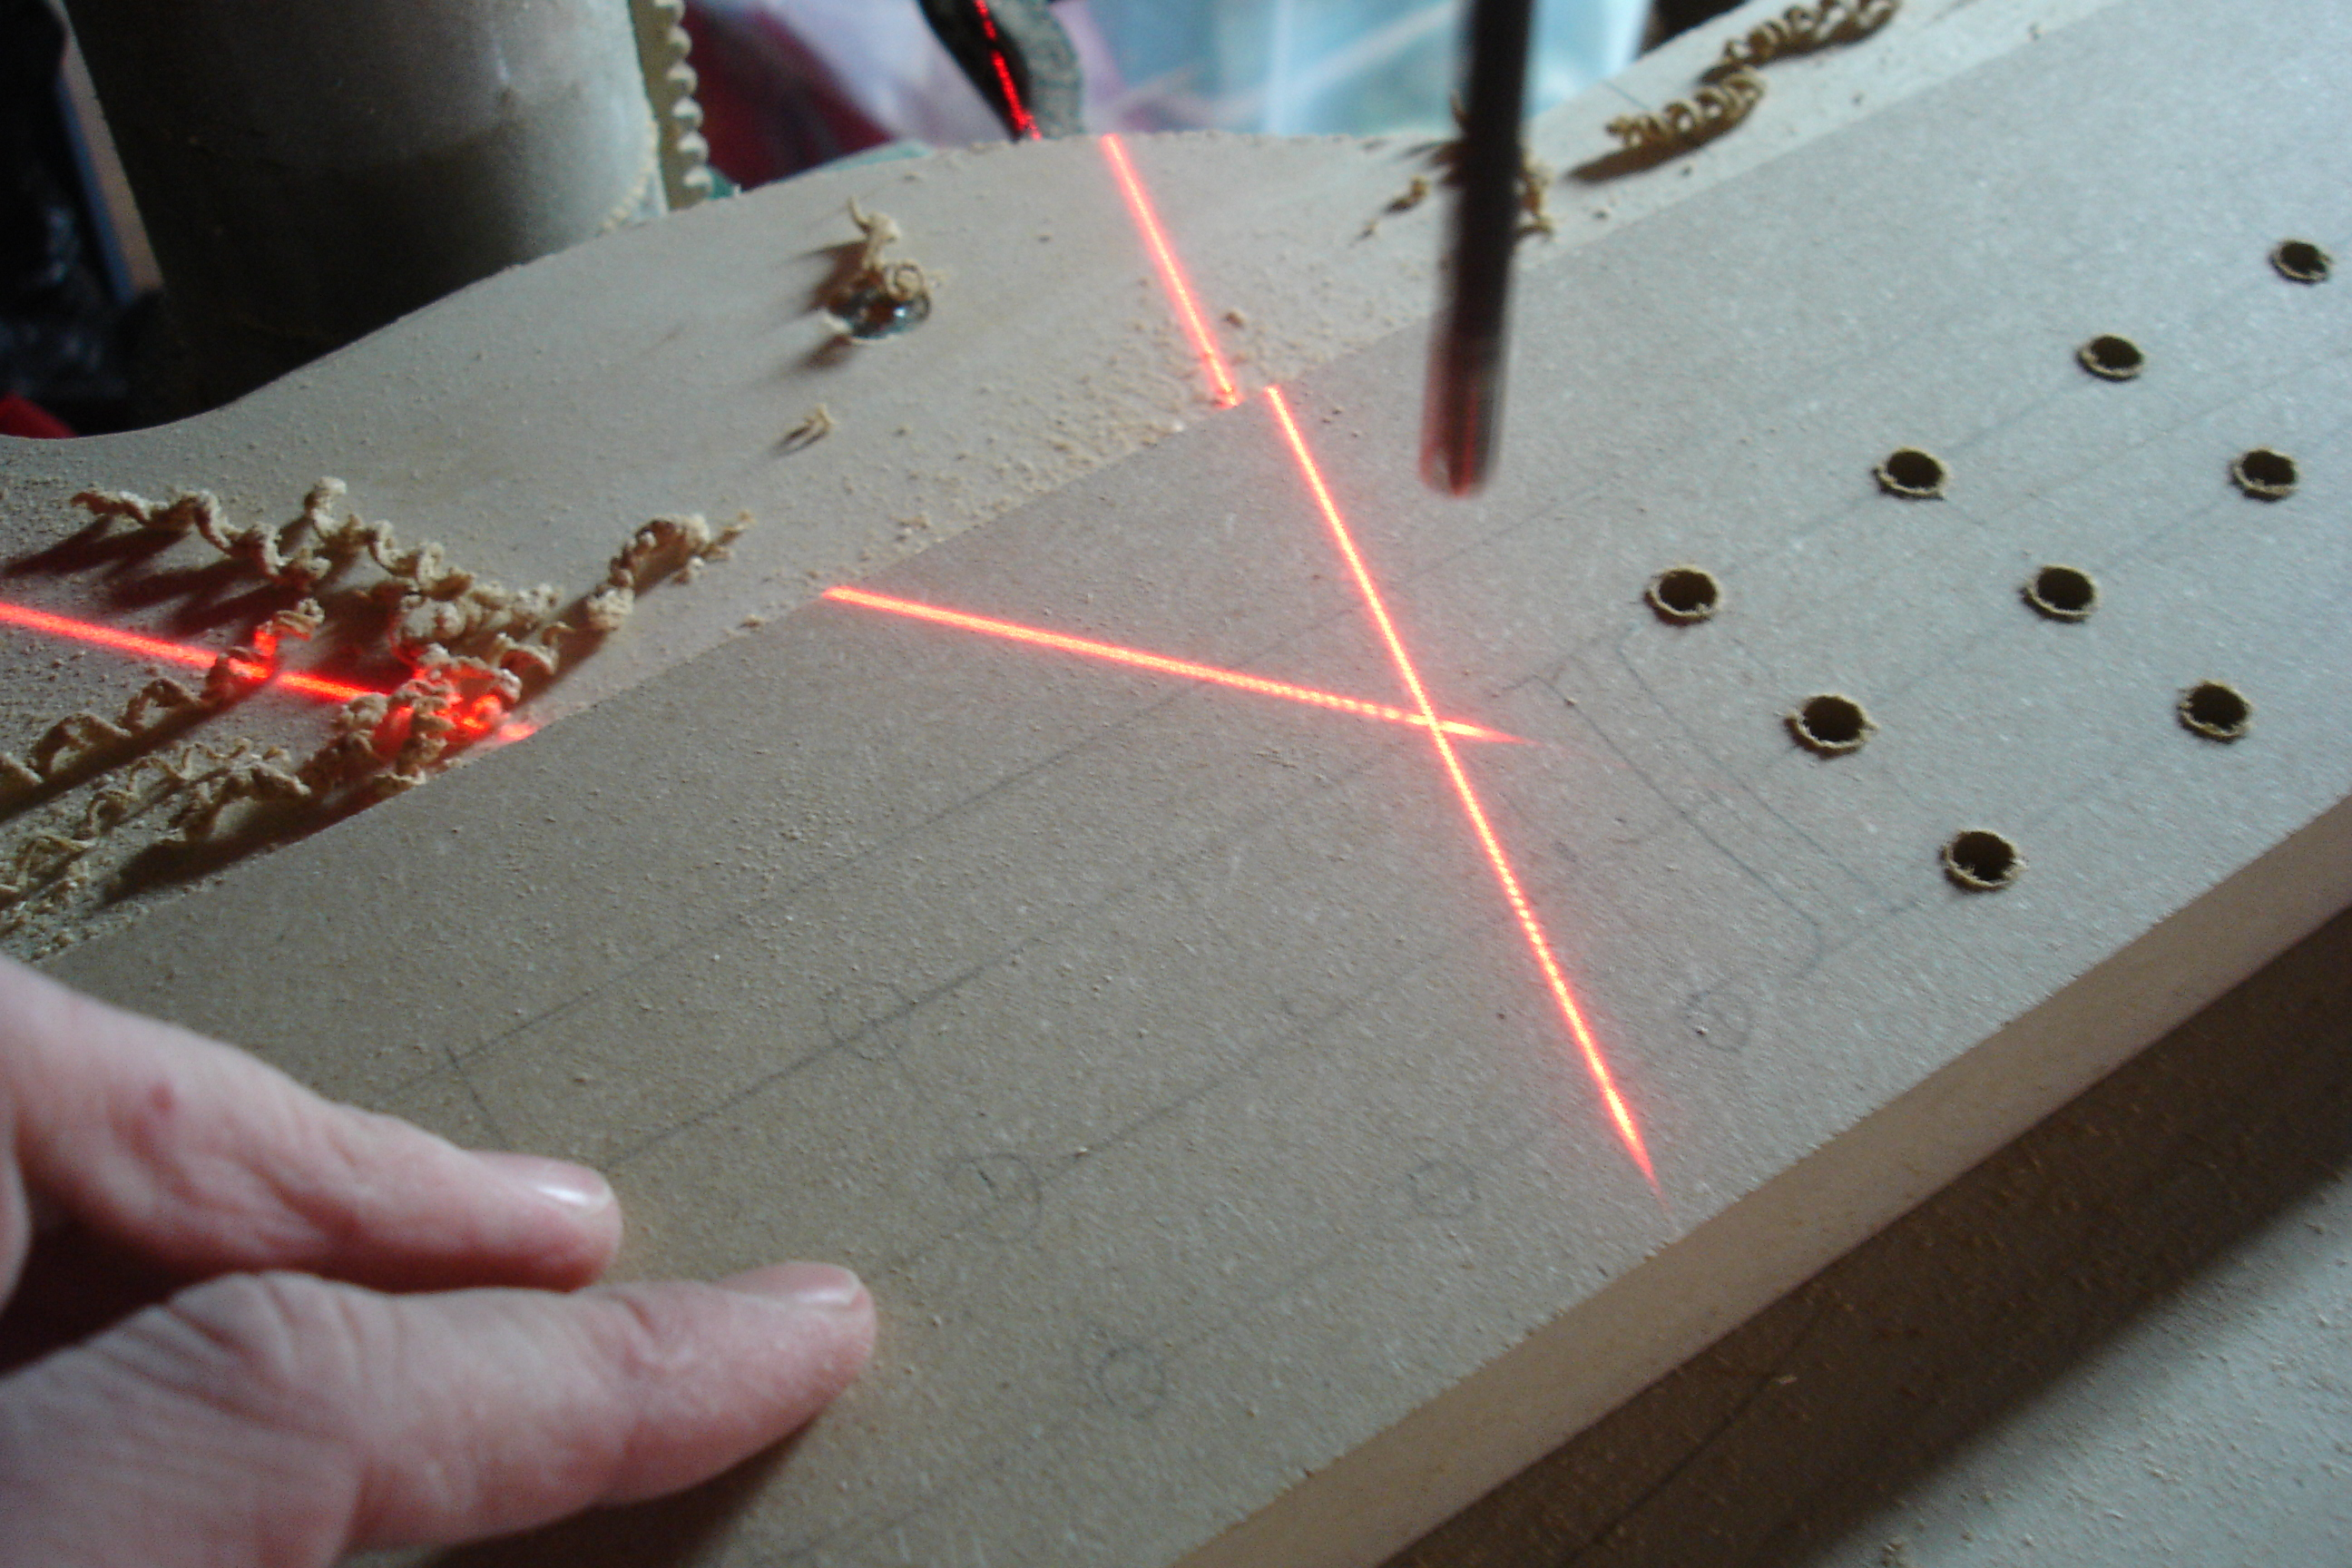 How to cut holes in wood - The Laser Cross Is Very Helpful When It Comes To Drilling Many Holes Fast It